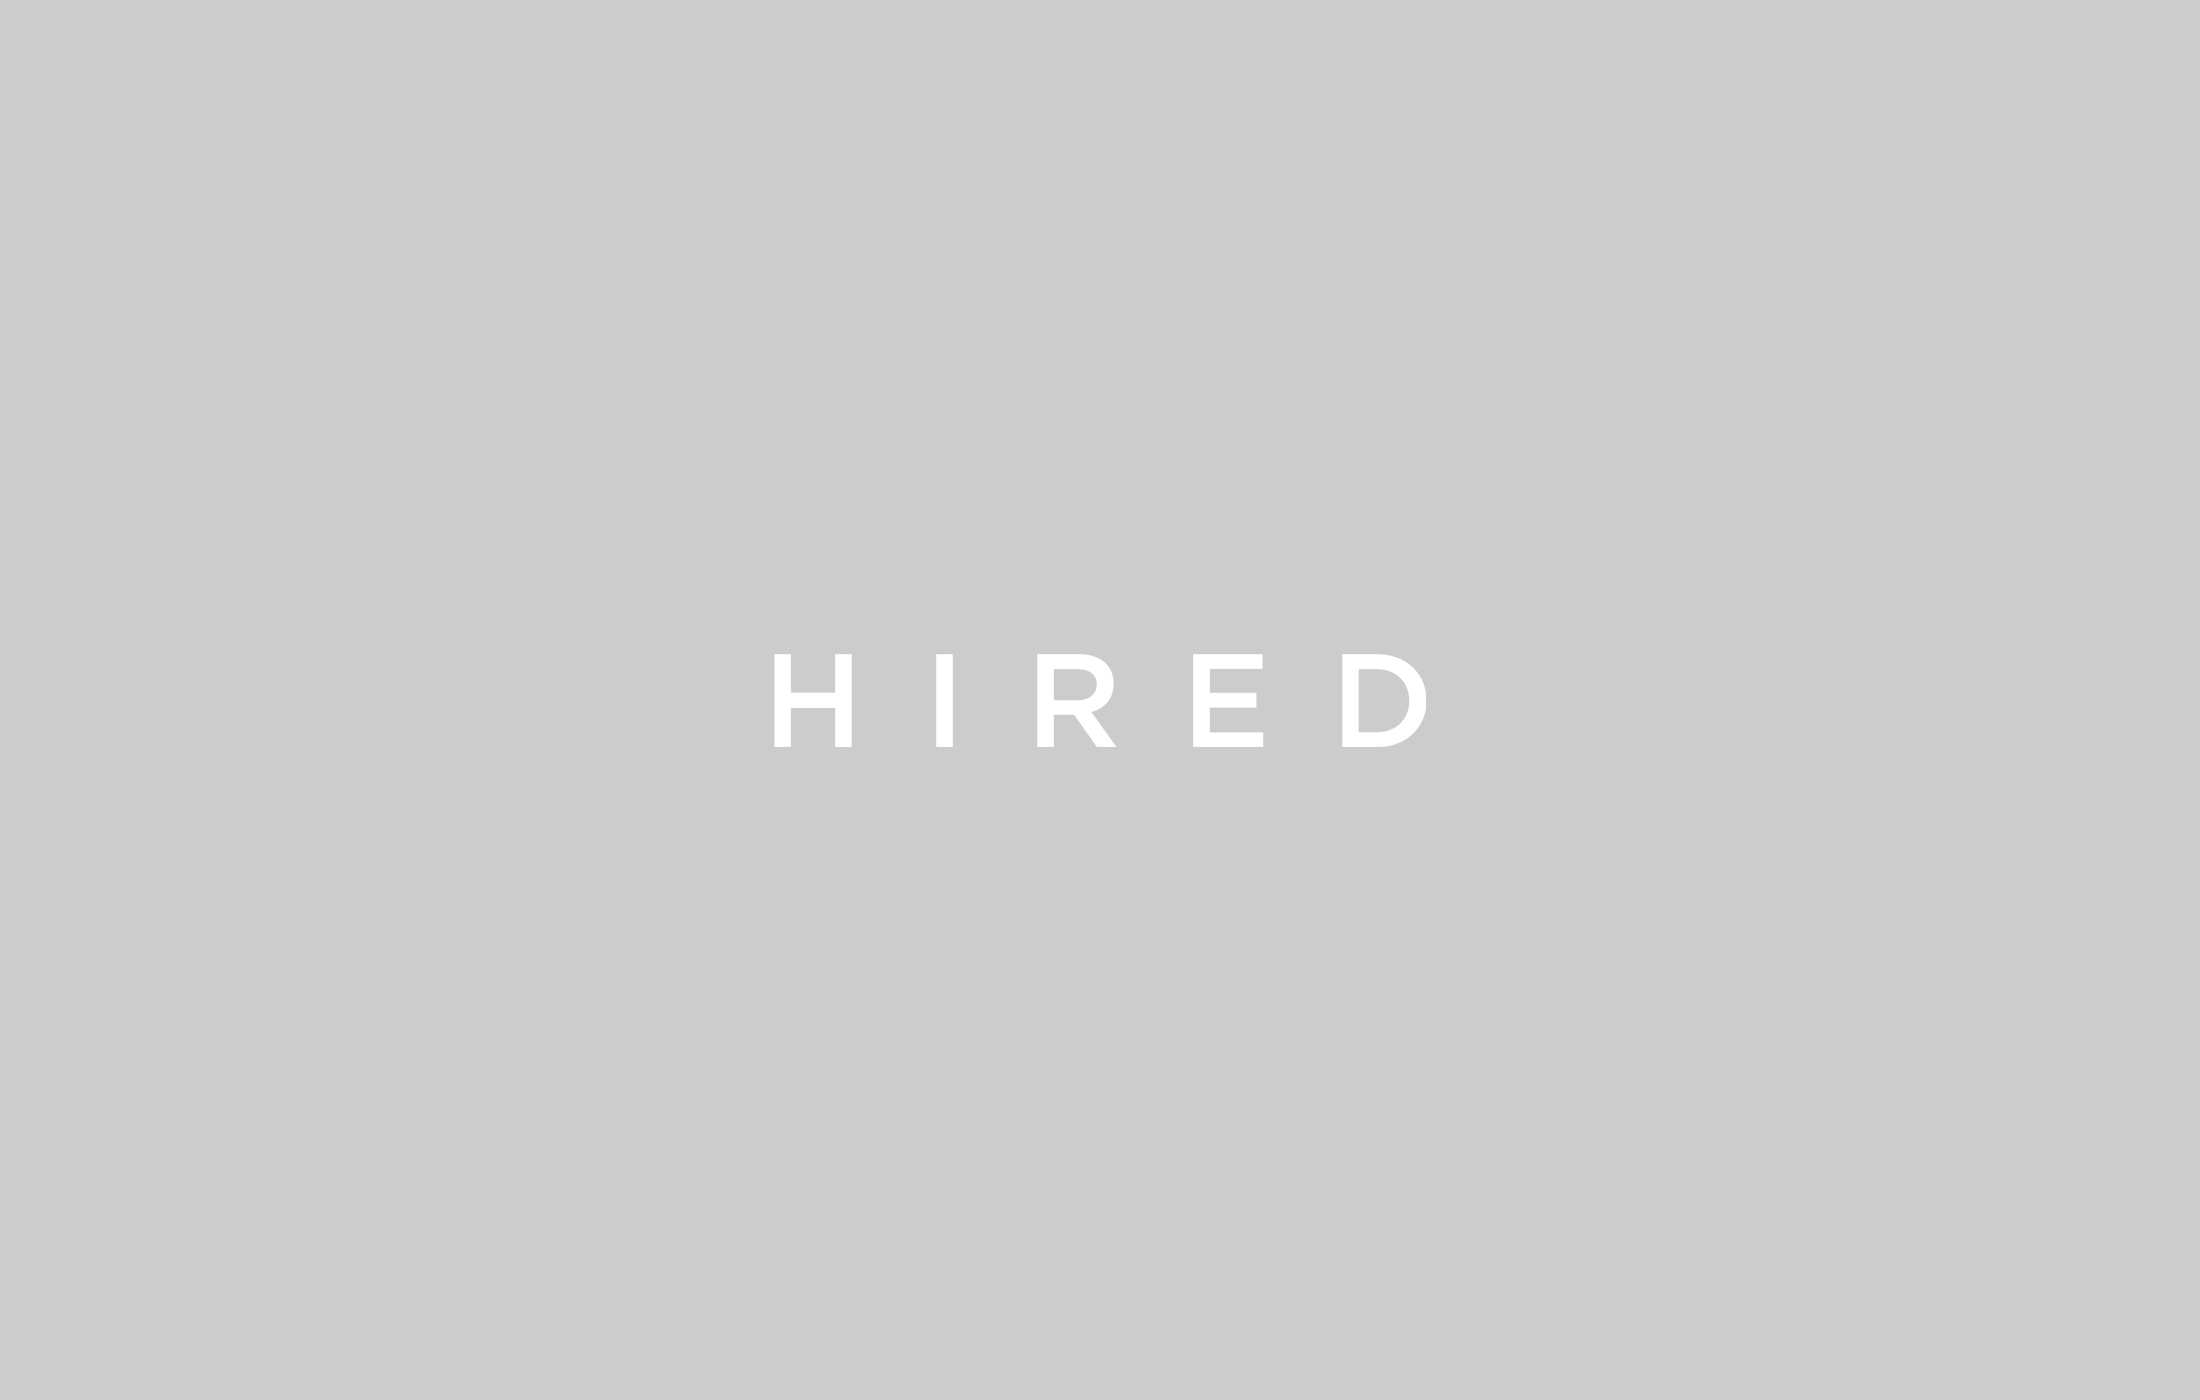 hired-boston-is-officially-open-for-business